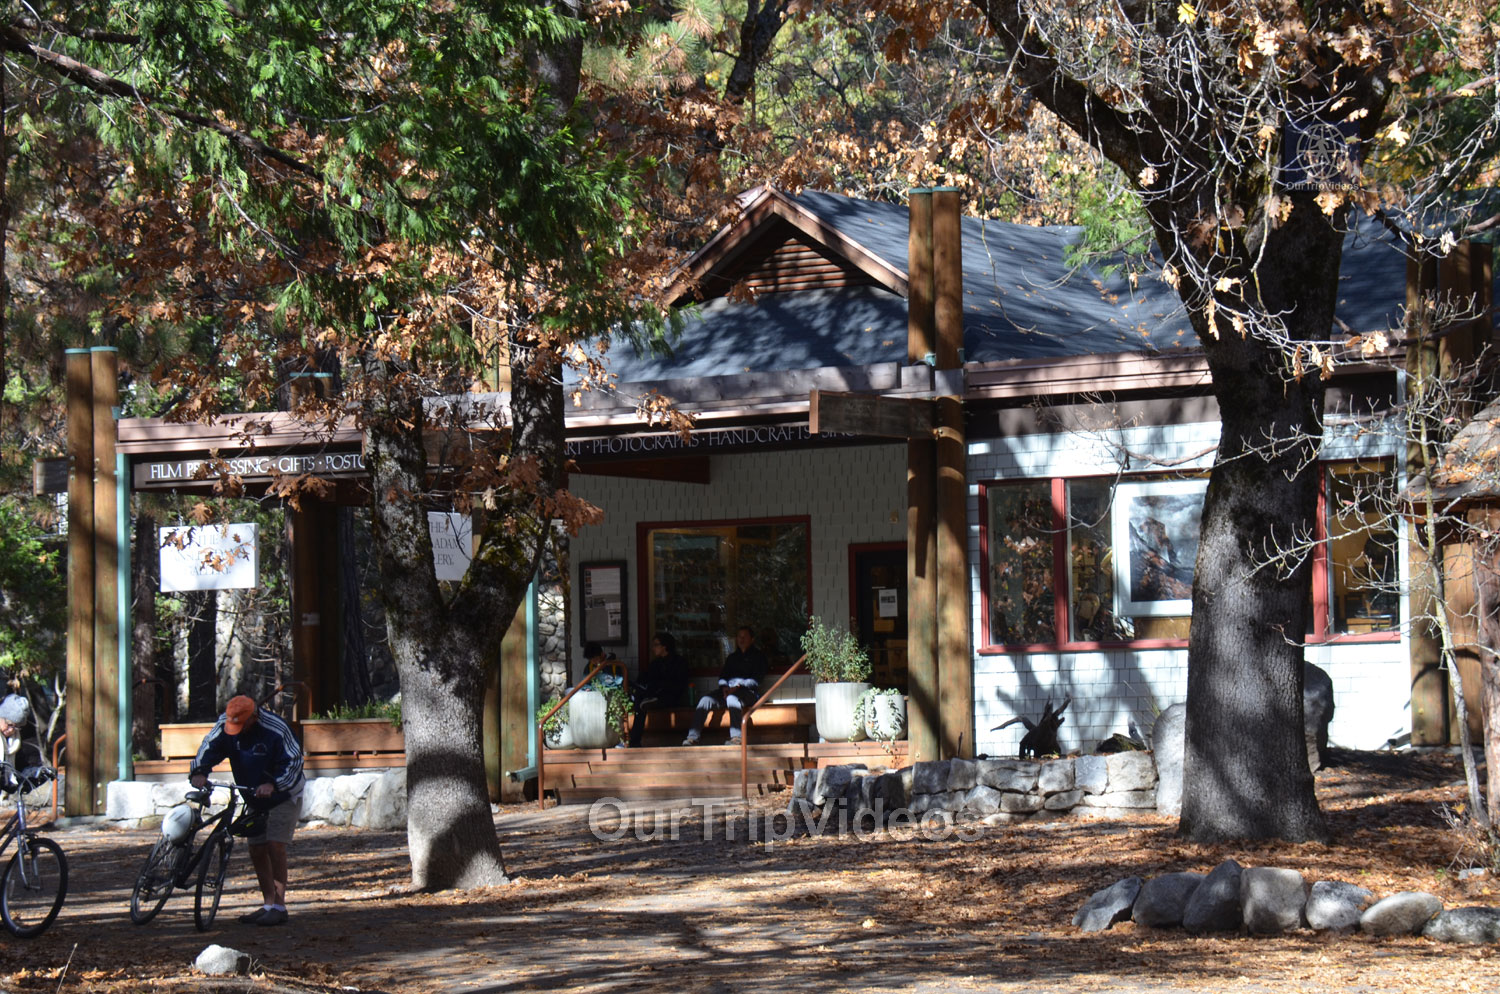 Yosemite National Park - Valley Visitor Center, Yosemite Valley, CA, USA - Picture 6 of 25